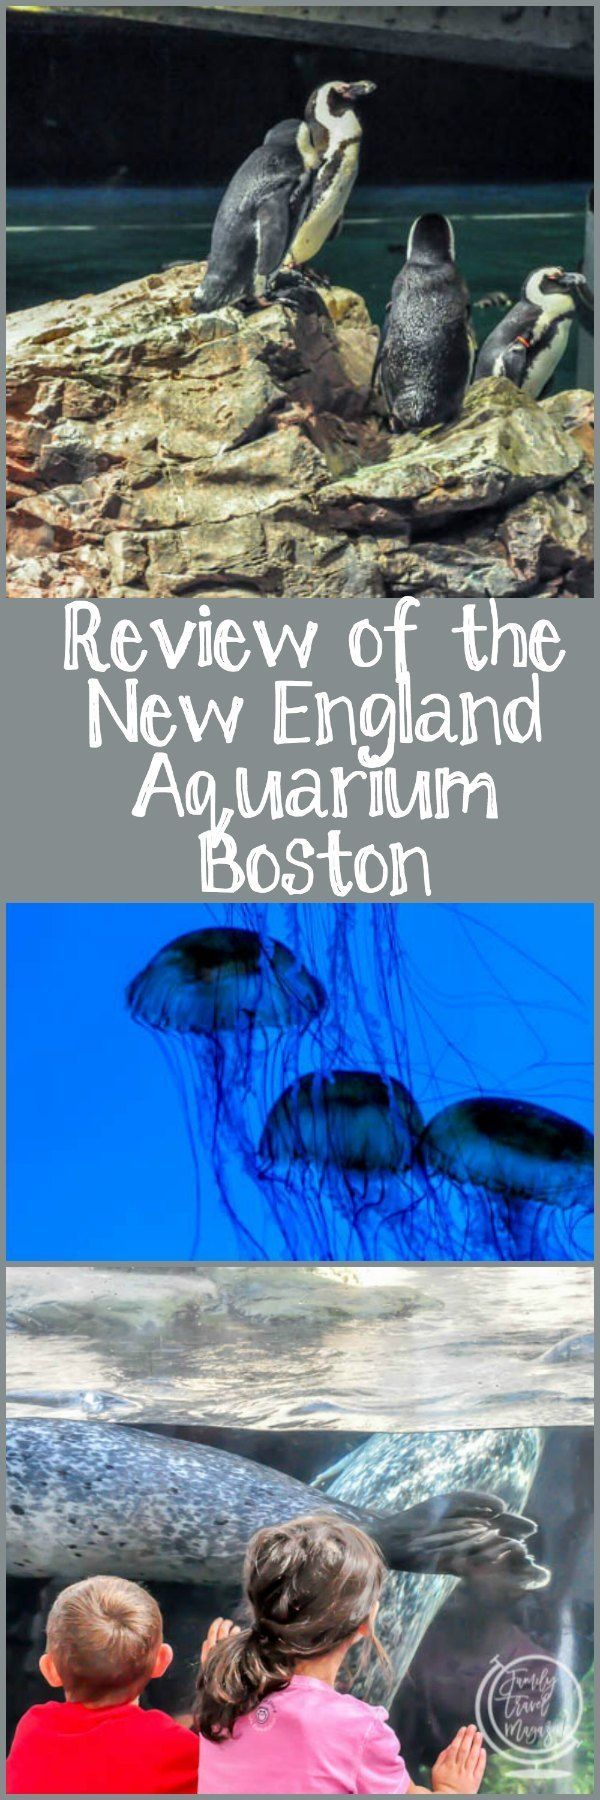 Review of the New England Aquarium Boston, including the New England Aquarium IMAX theater and the giant ocean tank.